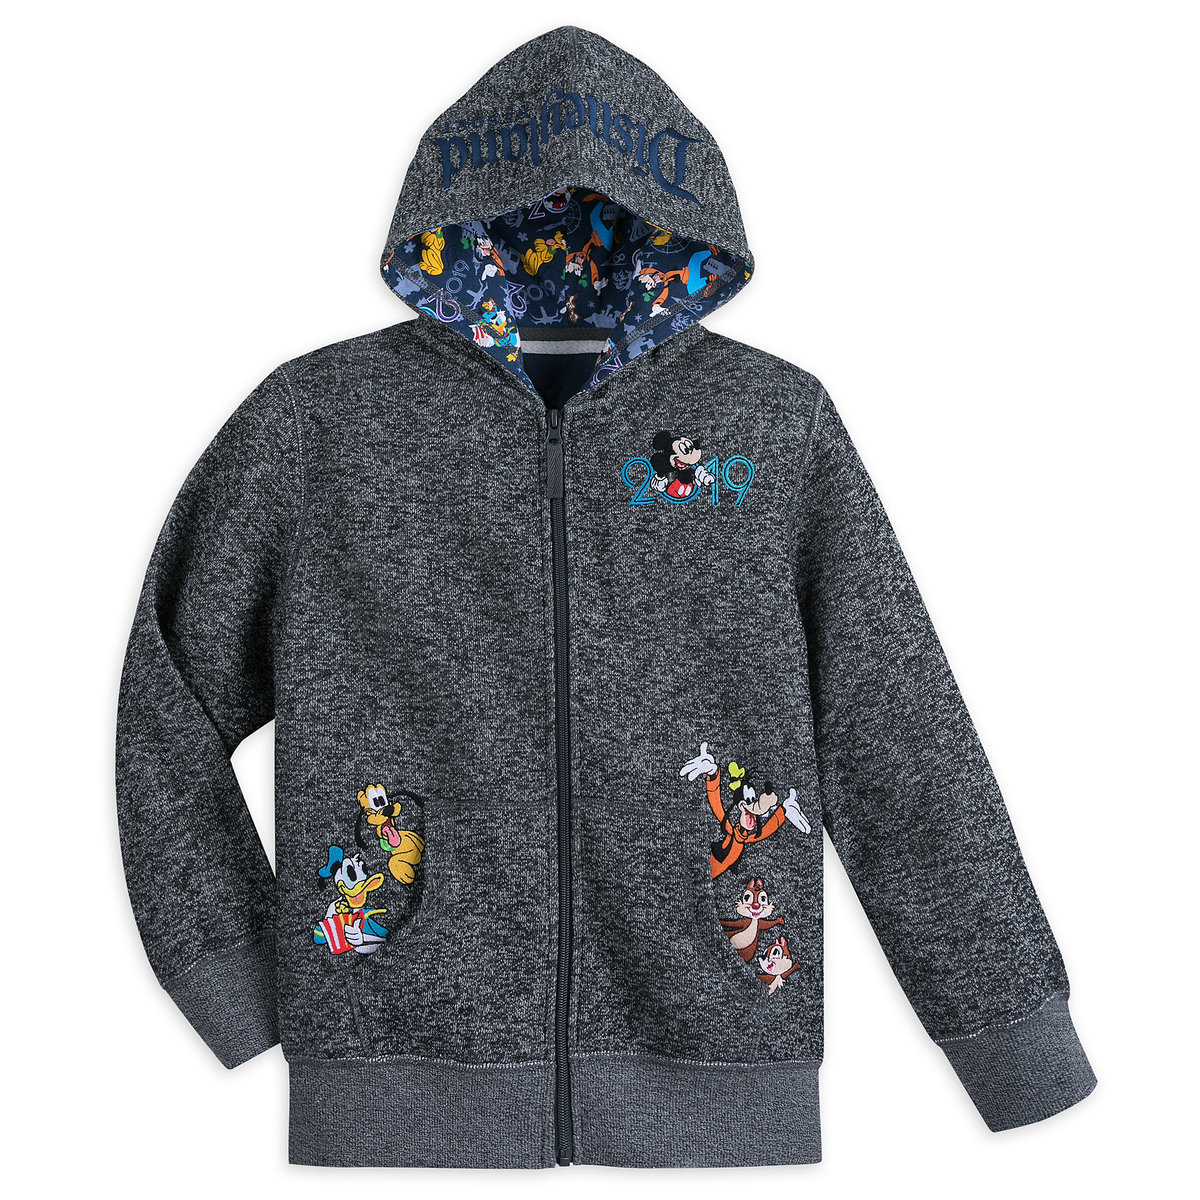 02e91b964a40 Product Image of Mickey Mouse and Friends Knit Hoodie for Boys - Disneyland  2019 # 1